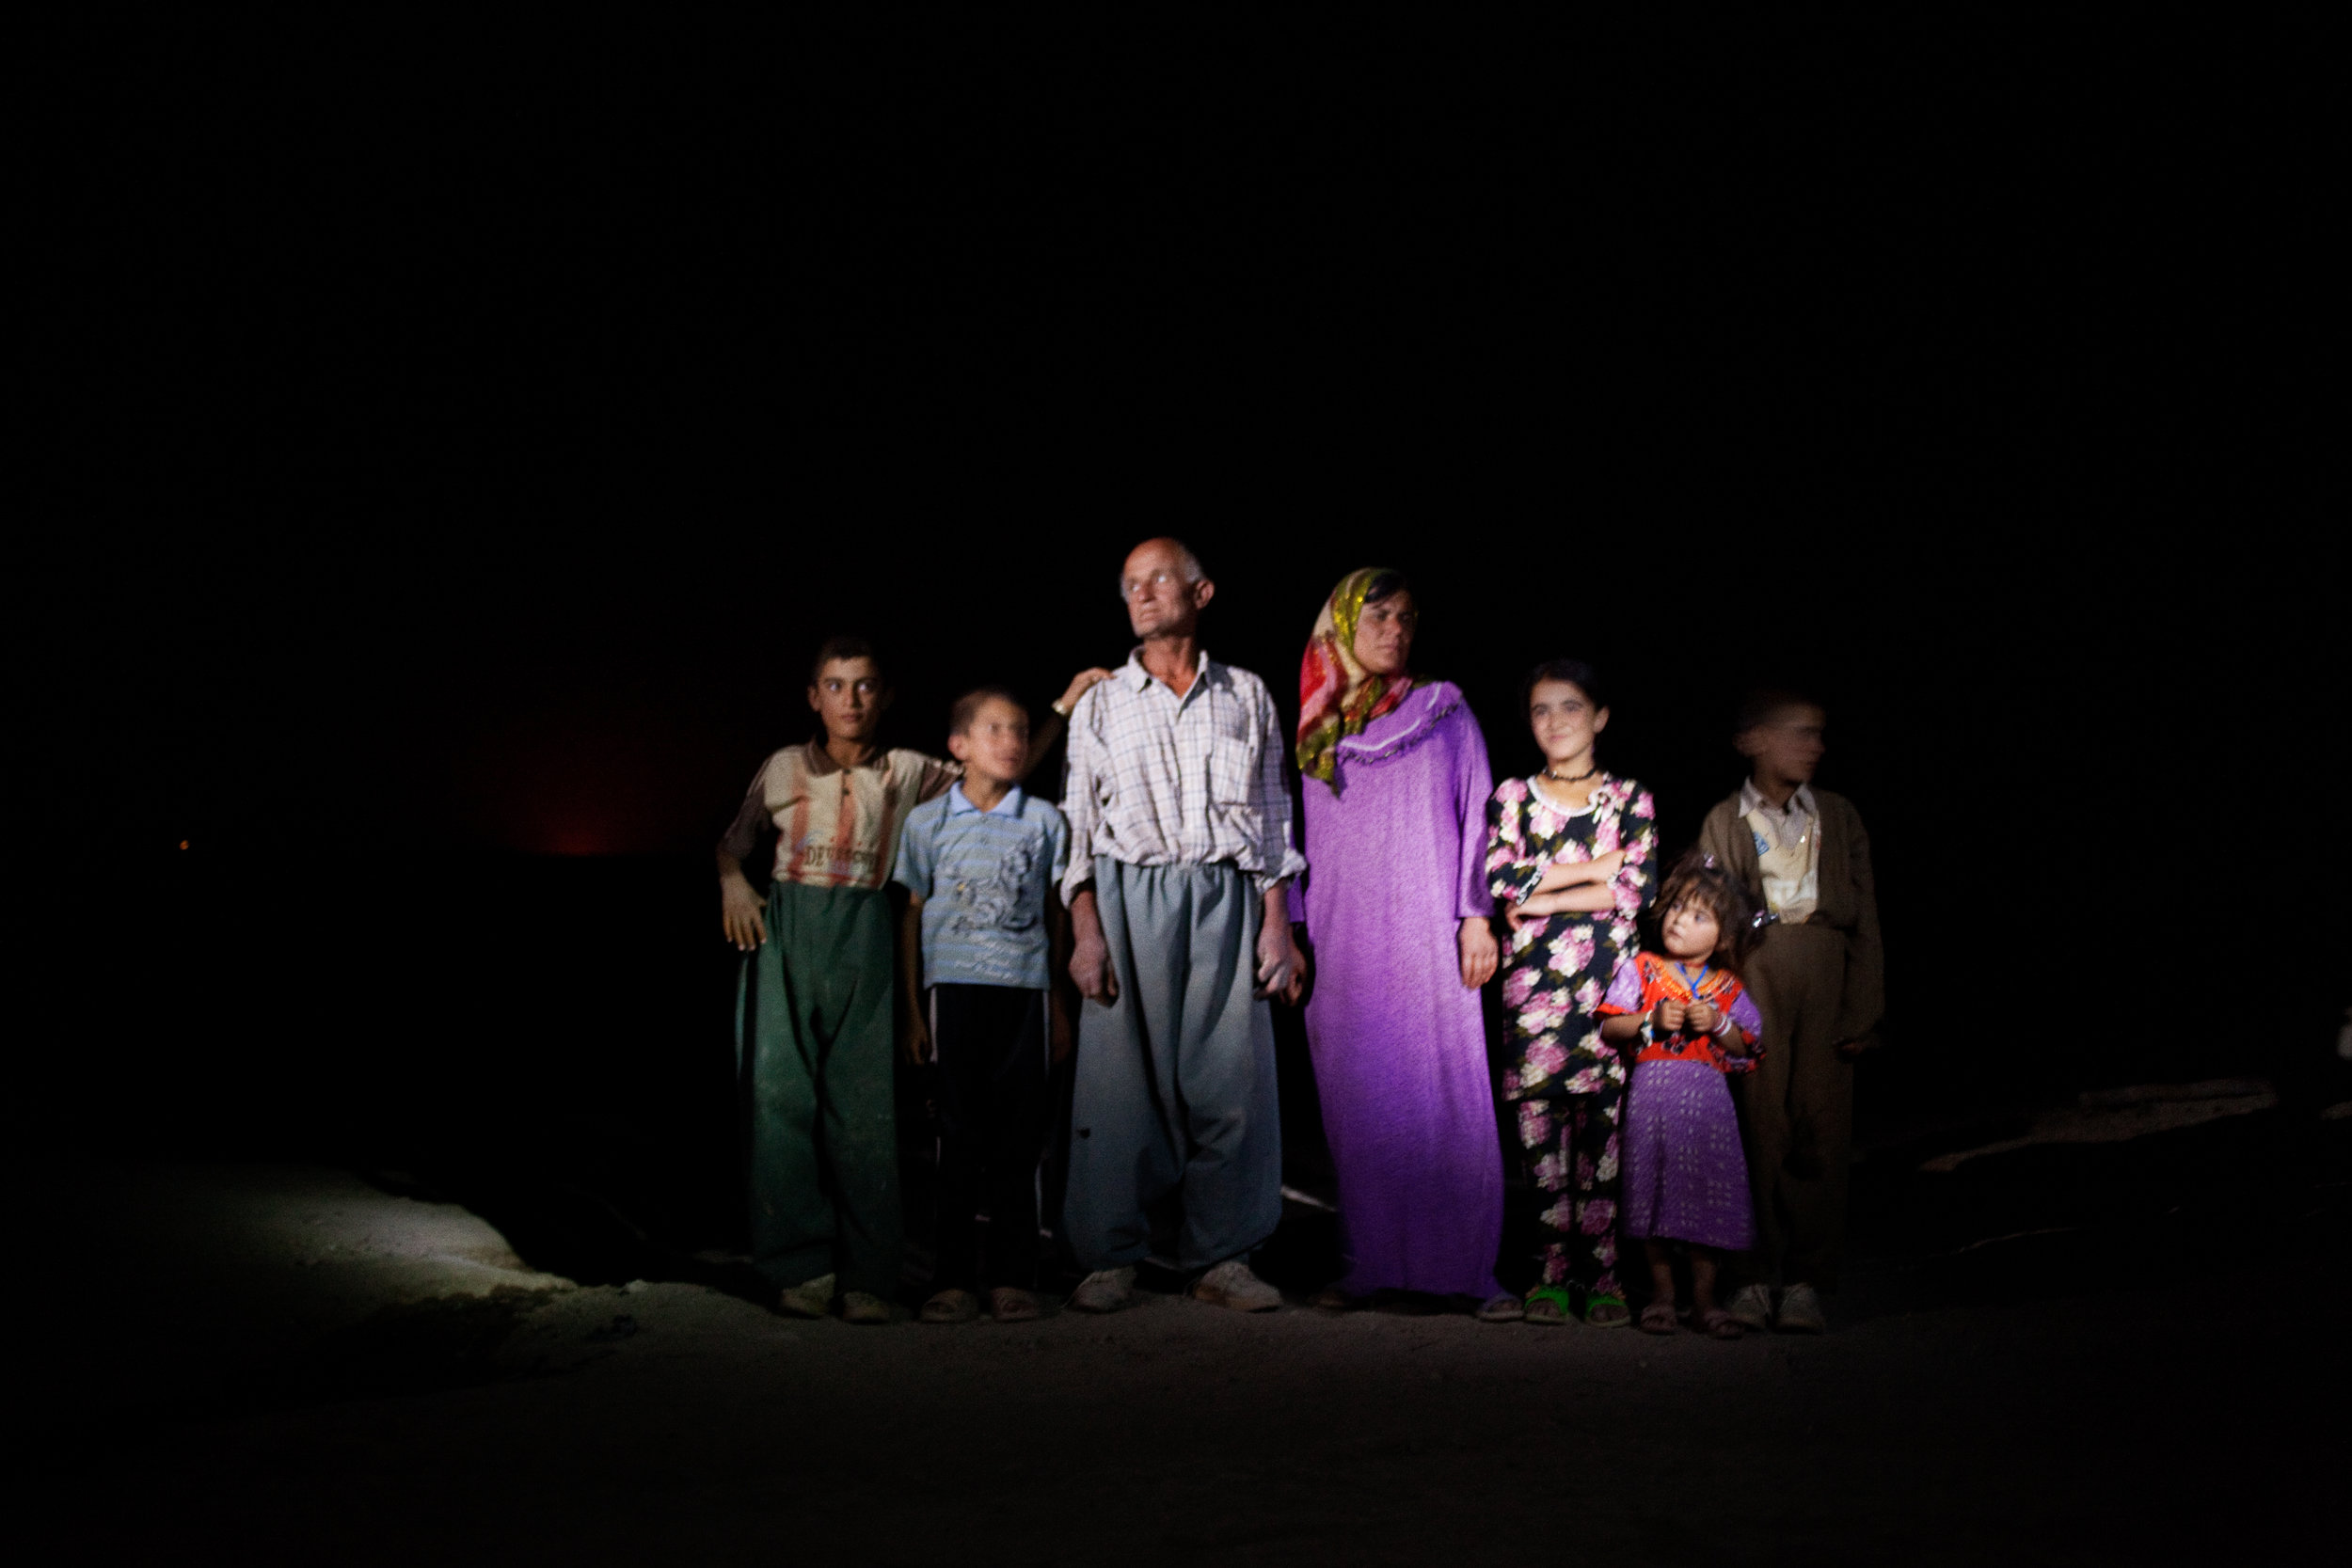 Nashmil Aziz Rashid, her brother-in-law, Khalaf Mohammed Qochakh, and the children of their household in Binika, Kurdistan, Iraq. on July 11, 2010.